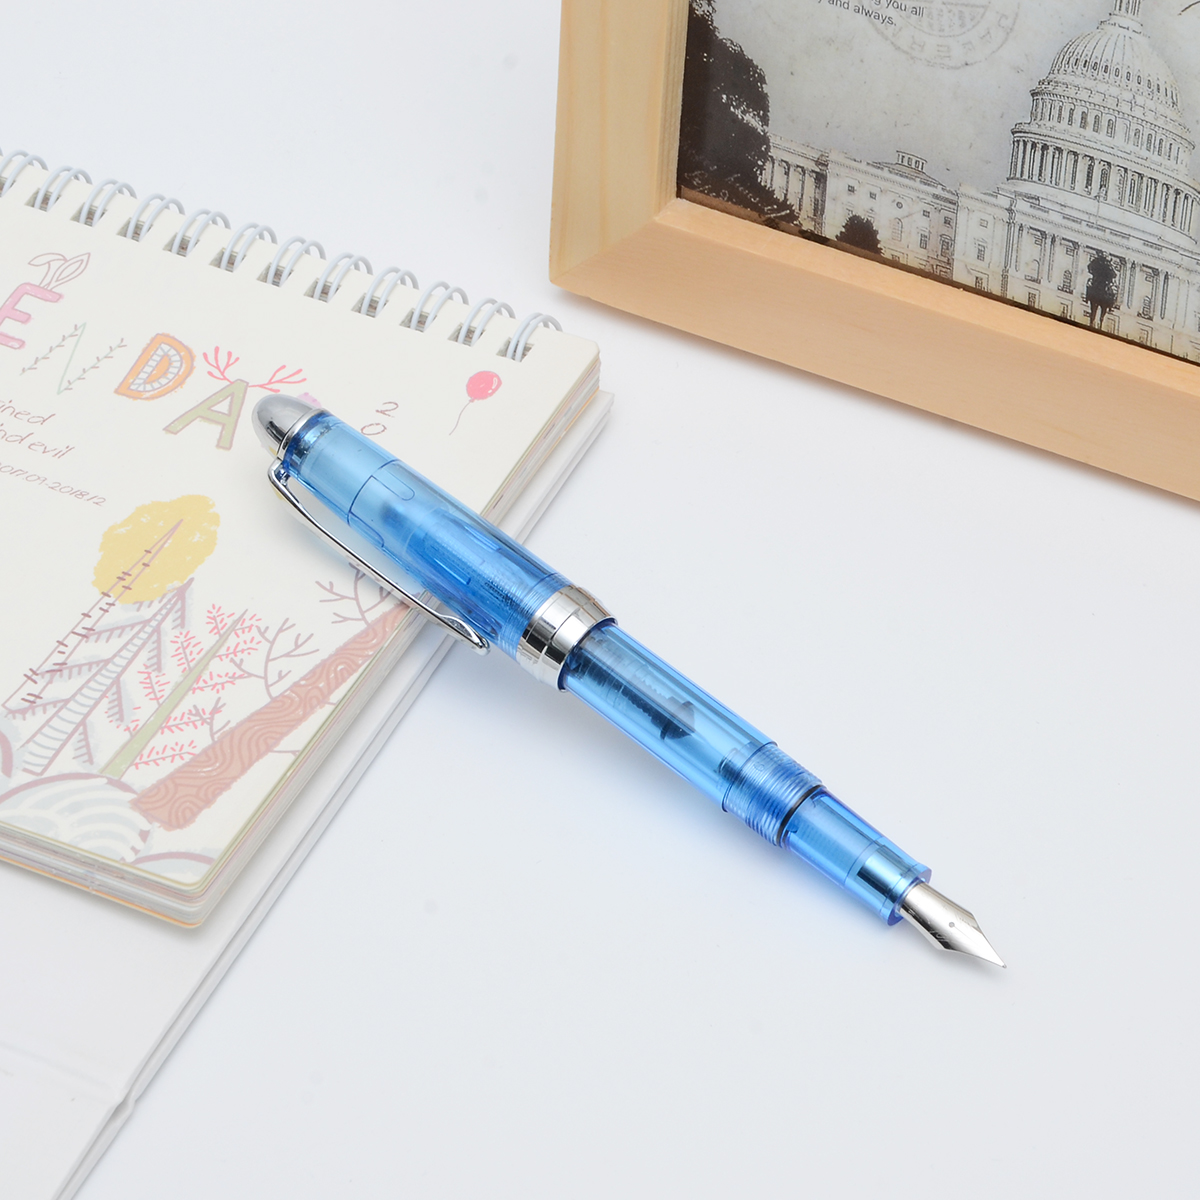 Wingsung 0.38mm Fine Nib Smooth Writing Fountain Pen School Office Stationery Supplies